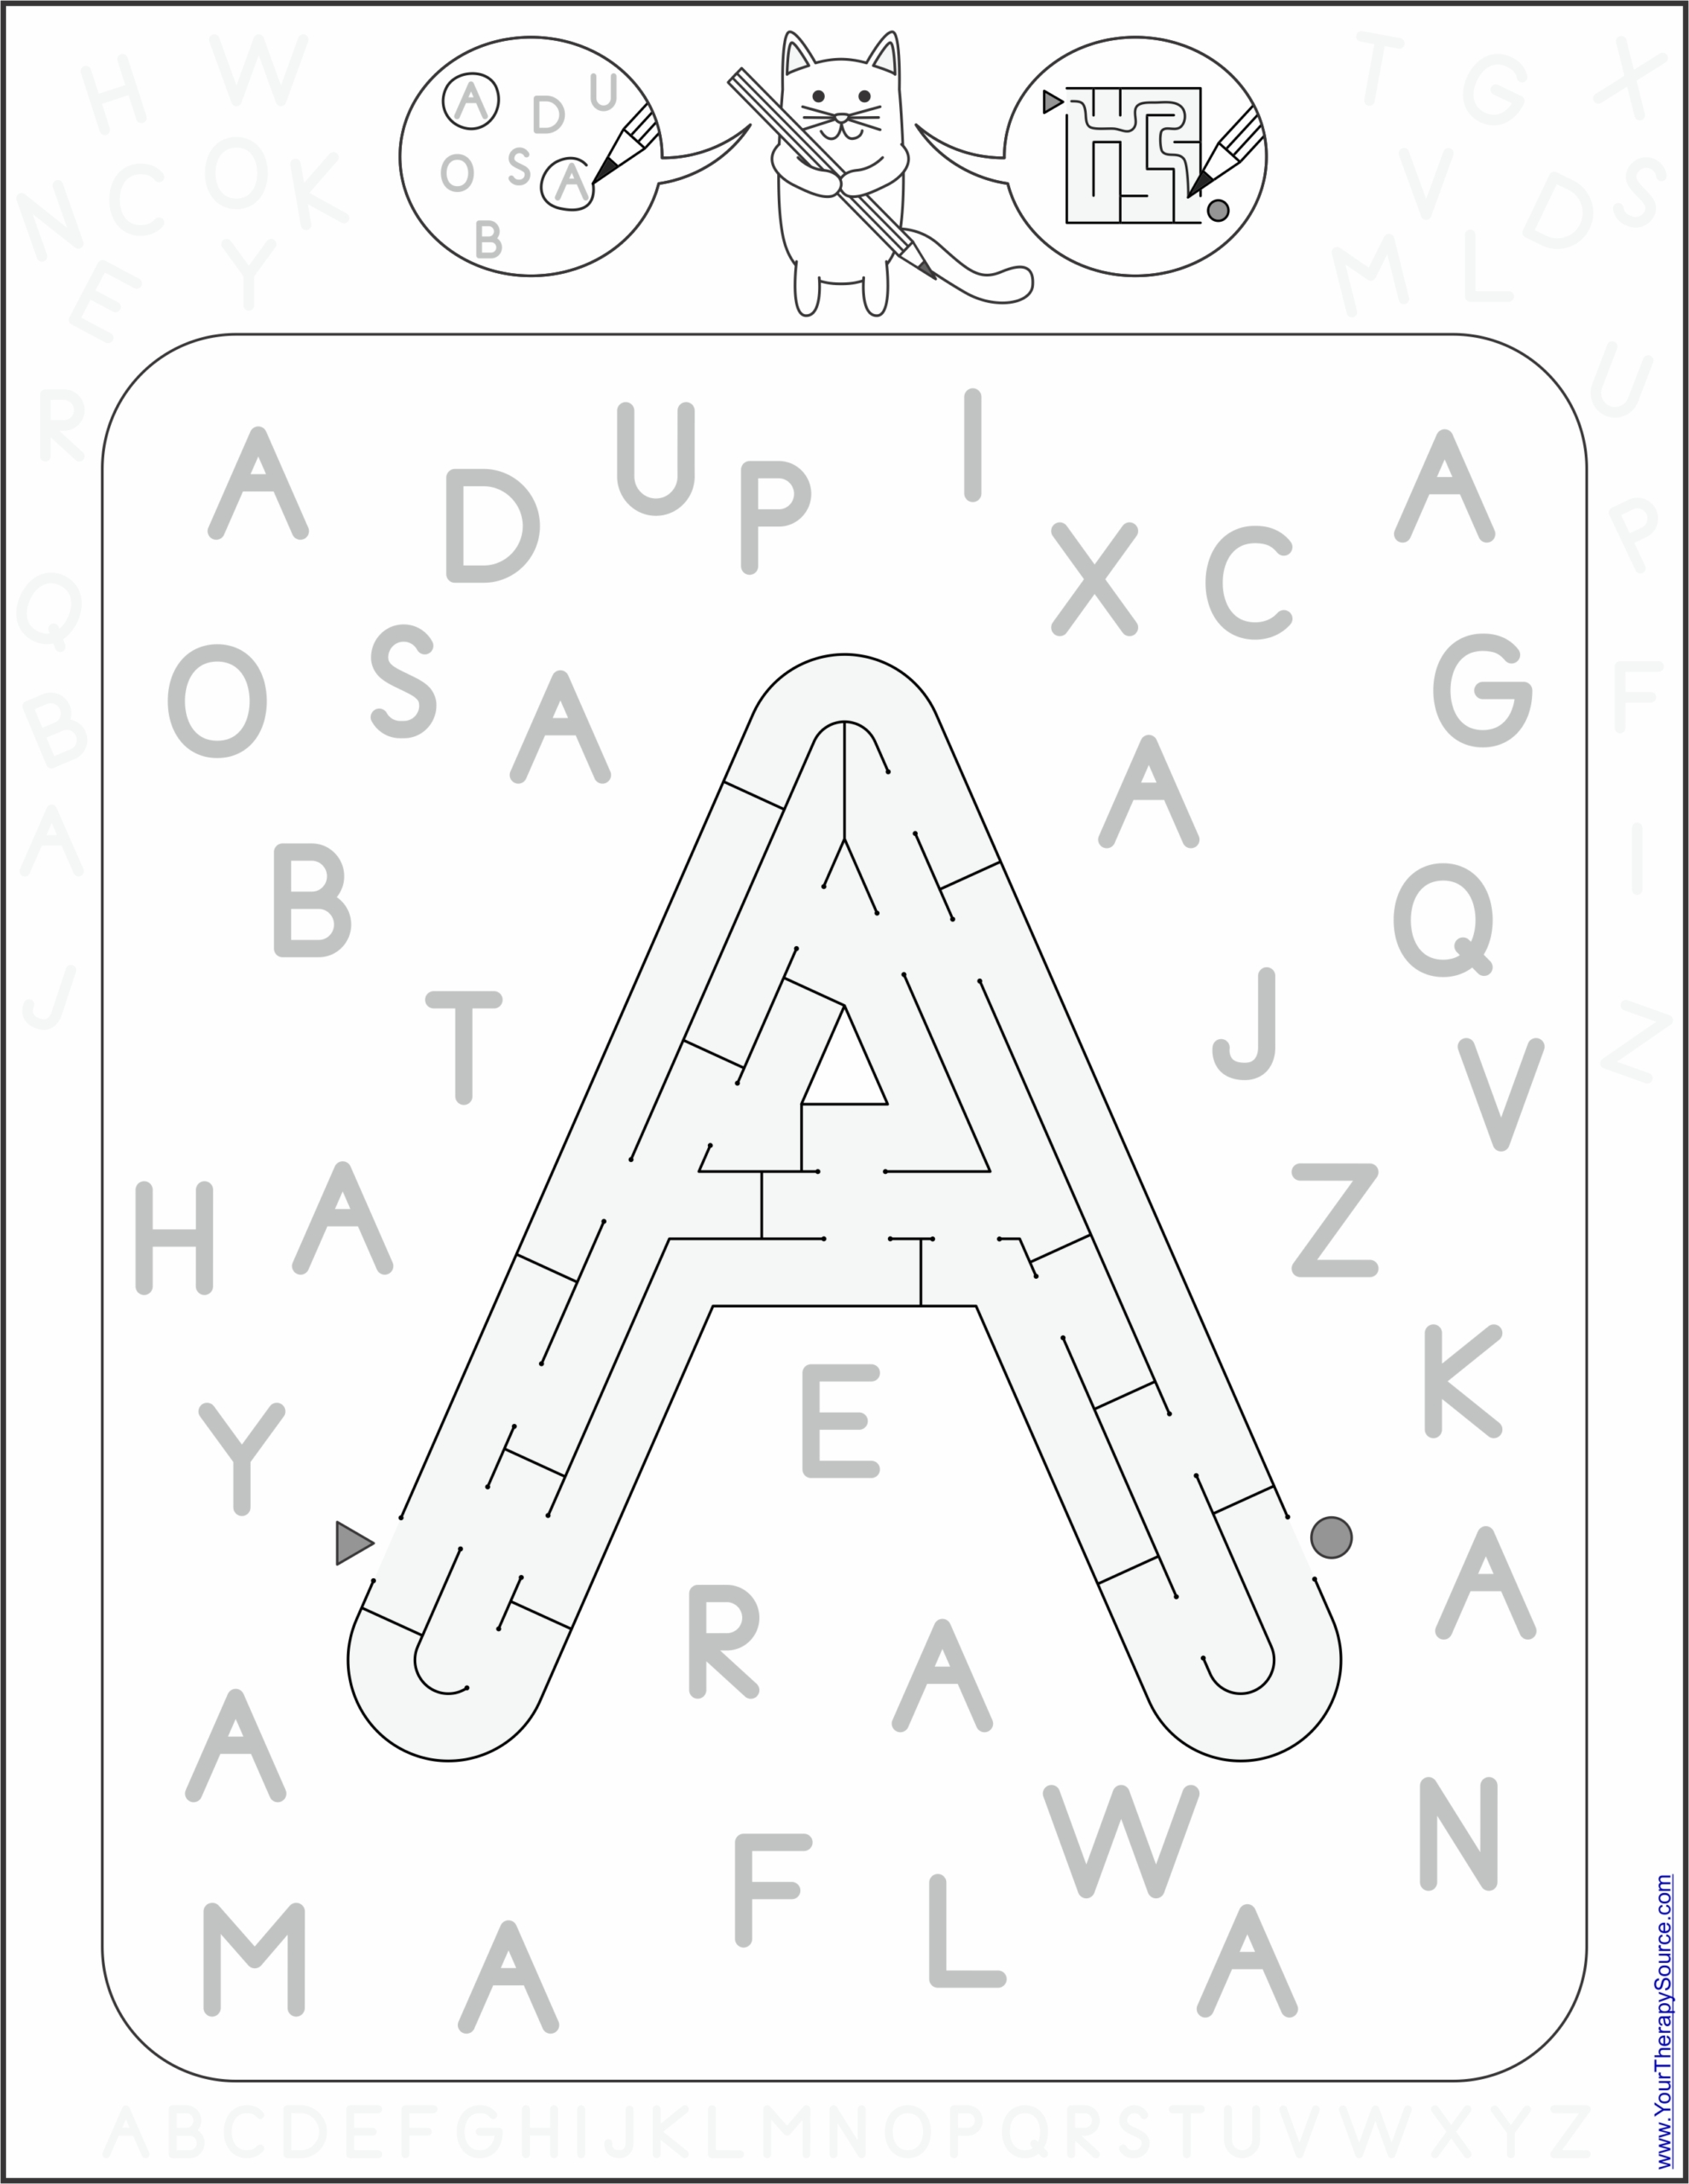 Find and Follow Letter A